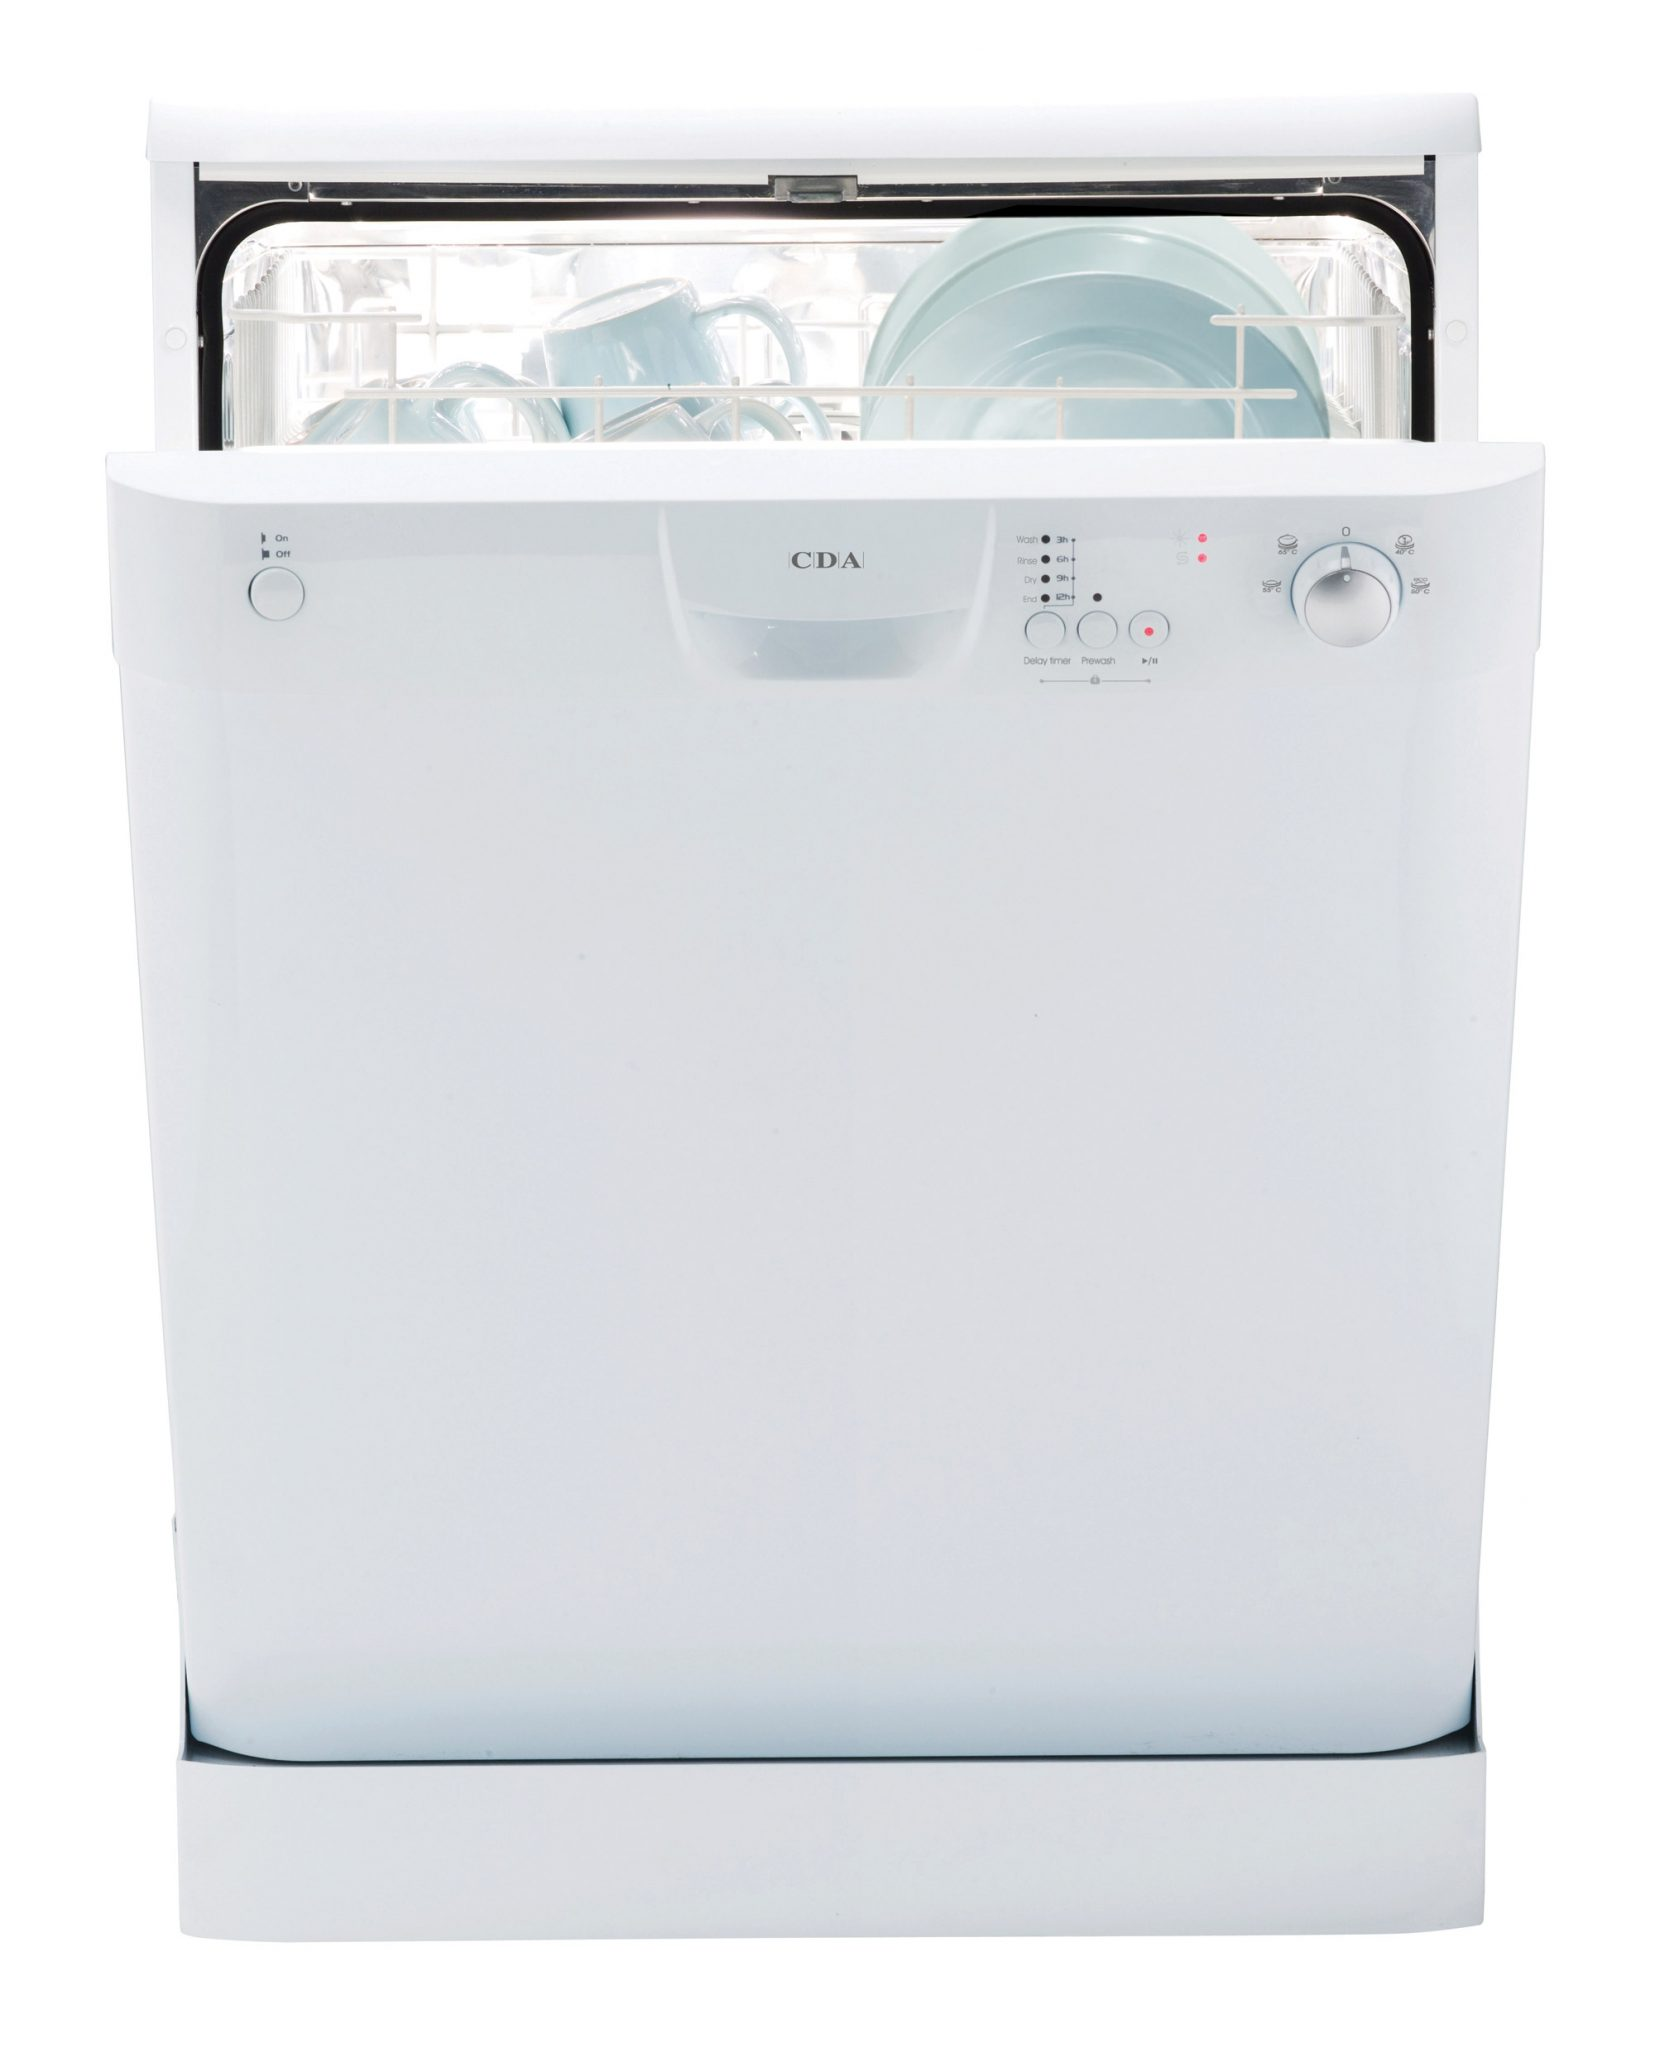 CDA Freestanding Dishwasher